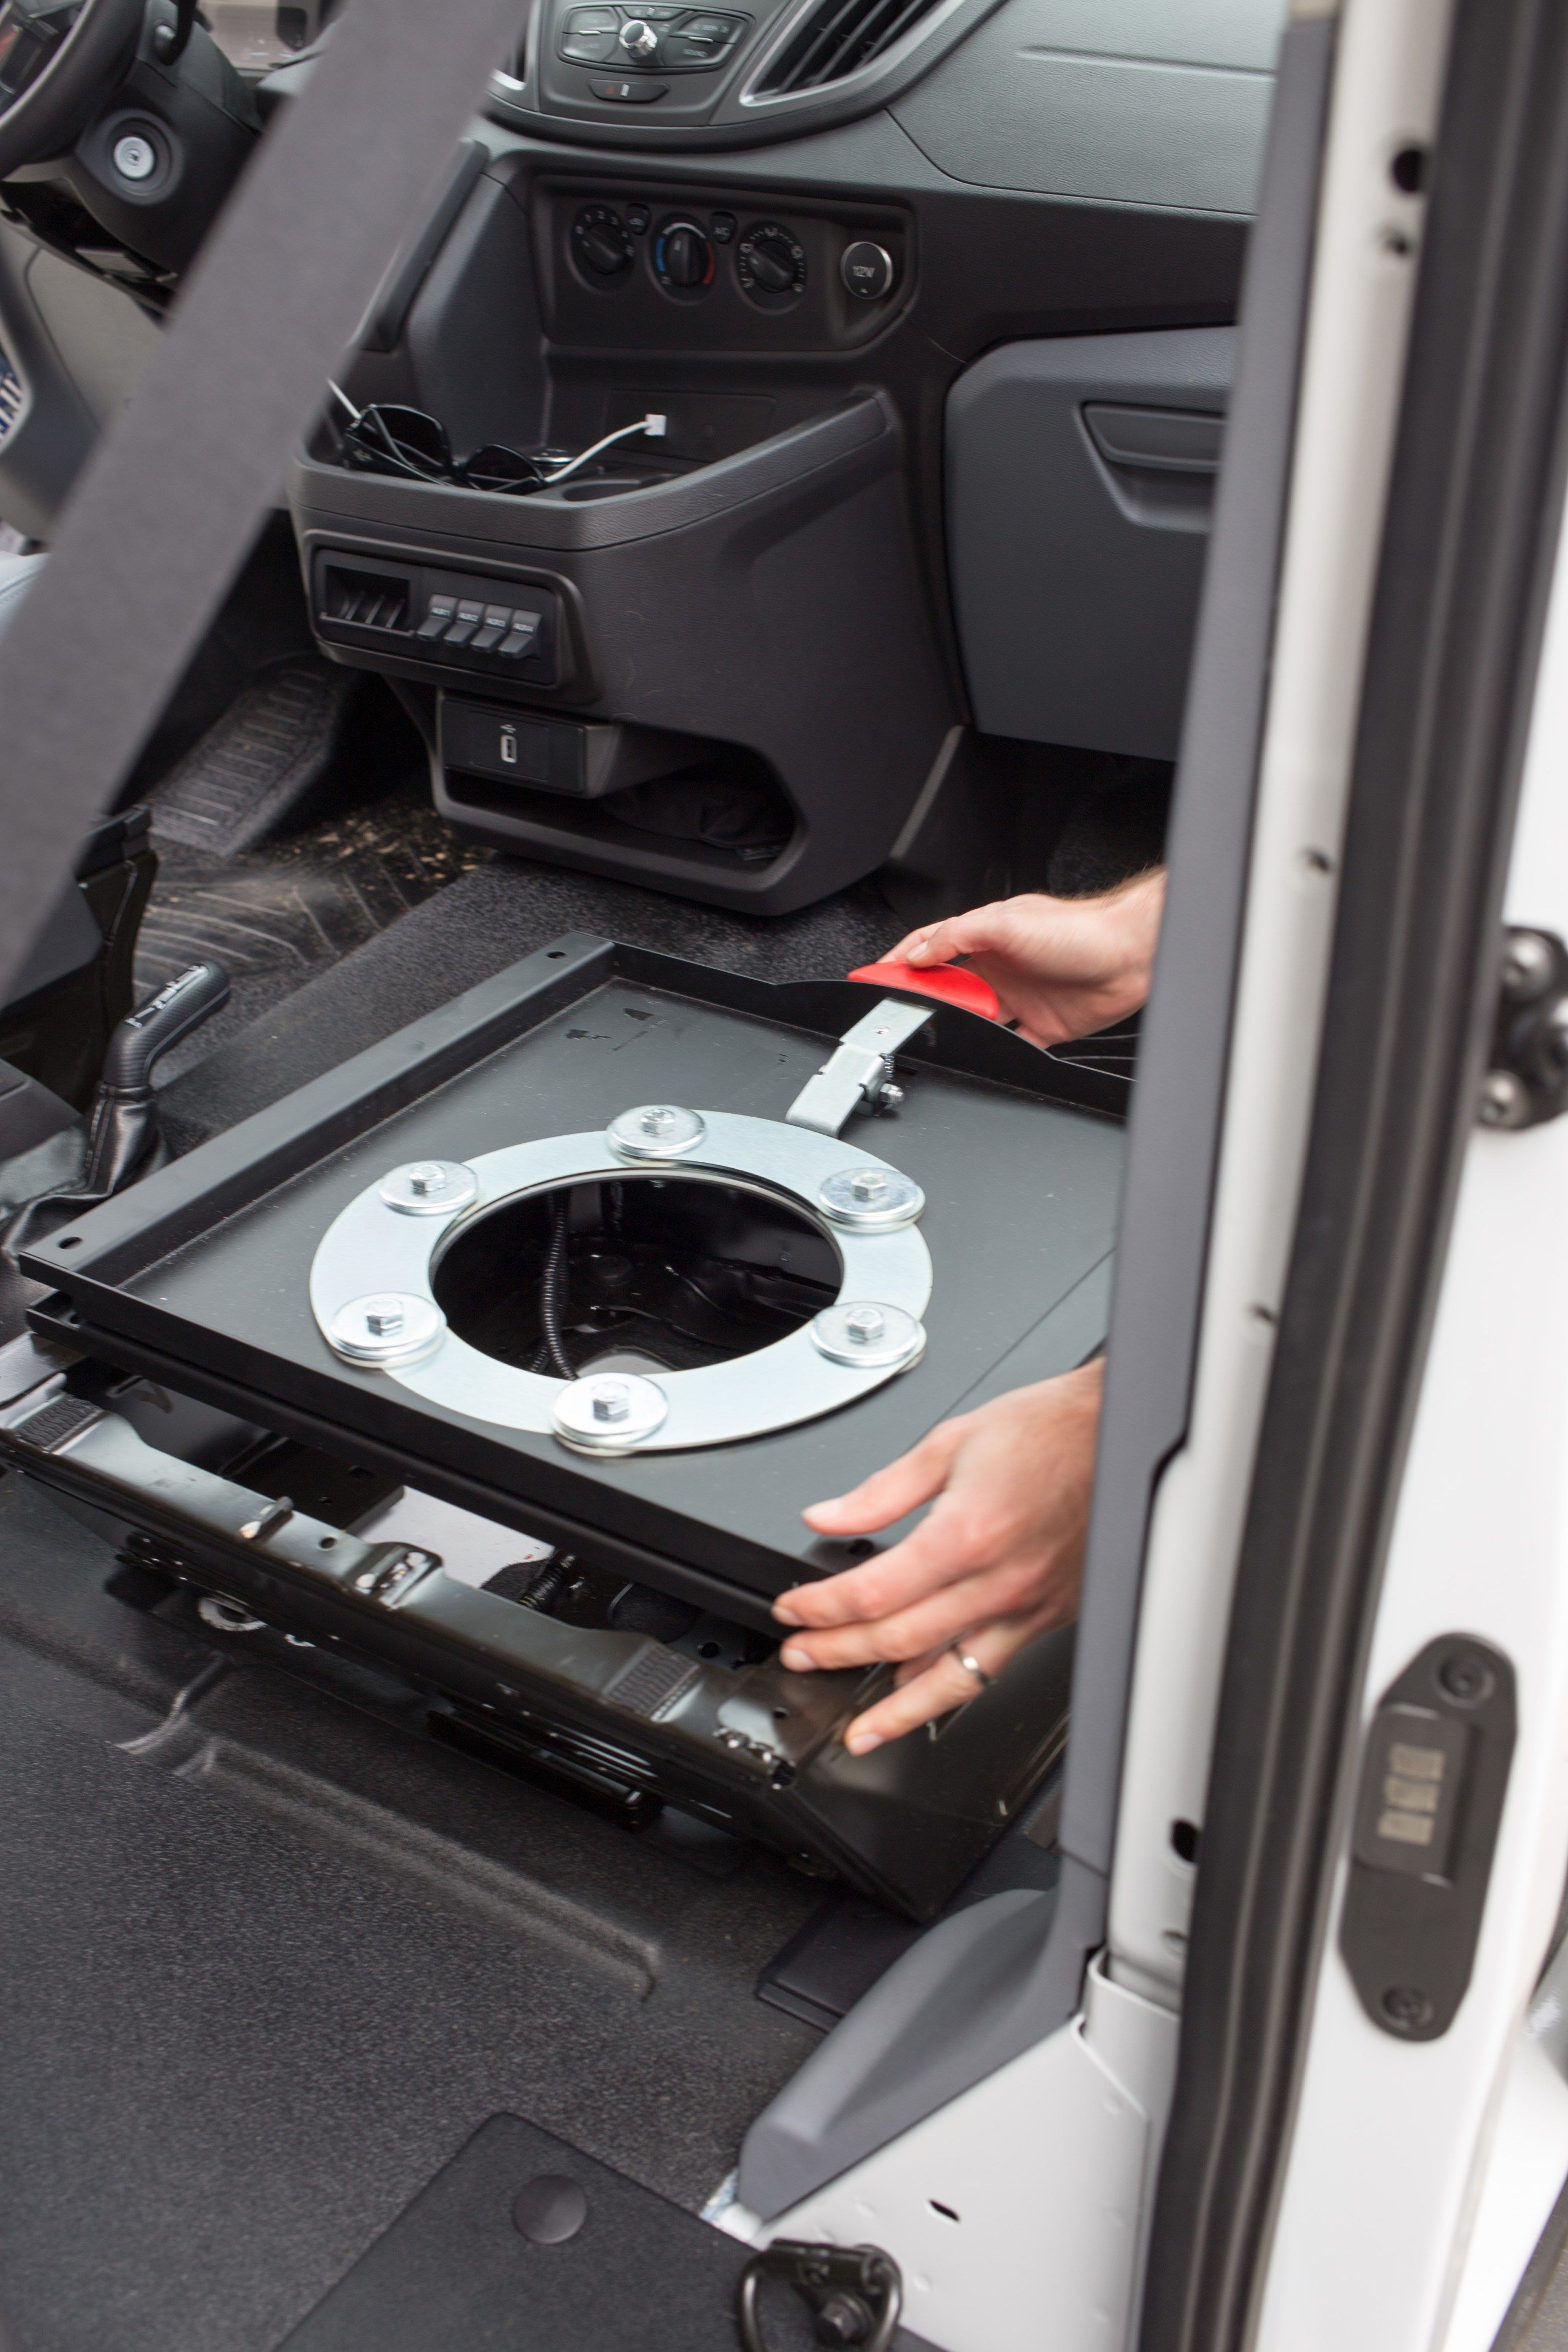 How To Install A Swivel Seat Adapter Transit Camper Ford Transit Camper Van Conversion Diy